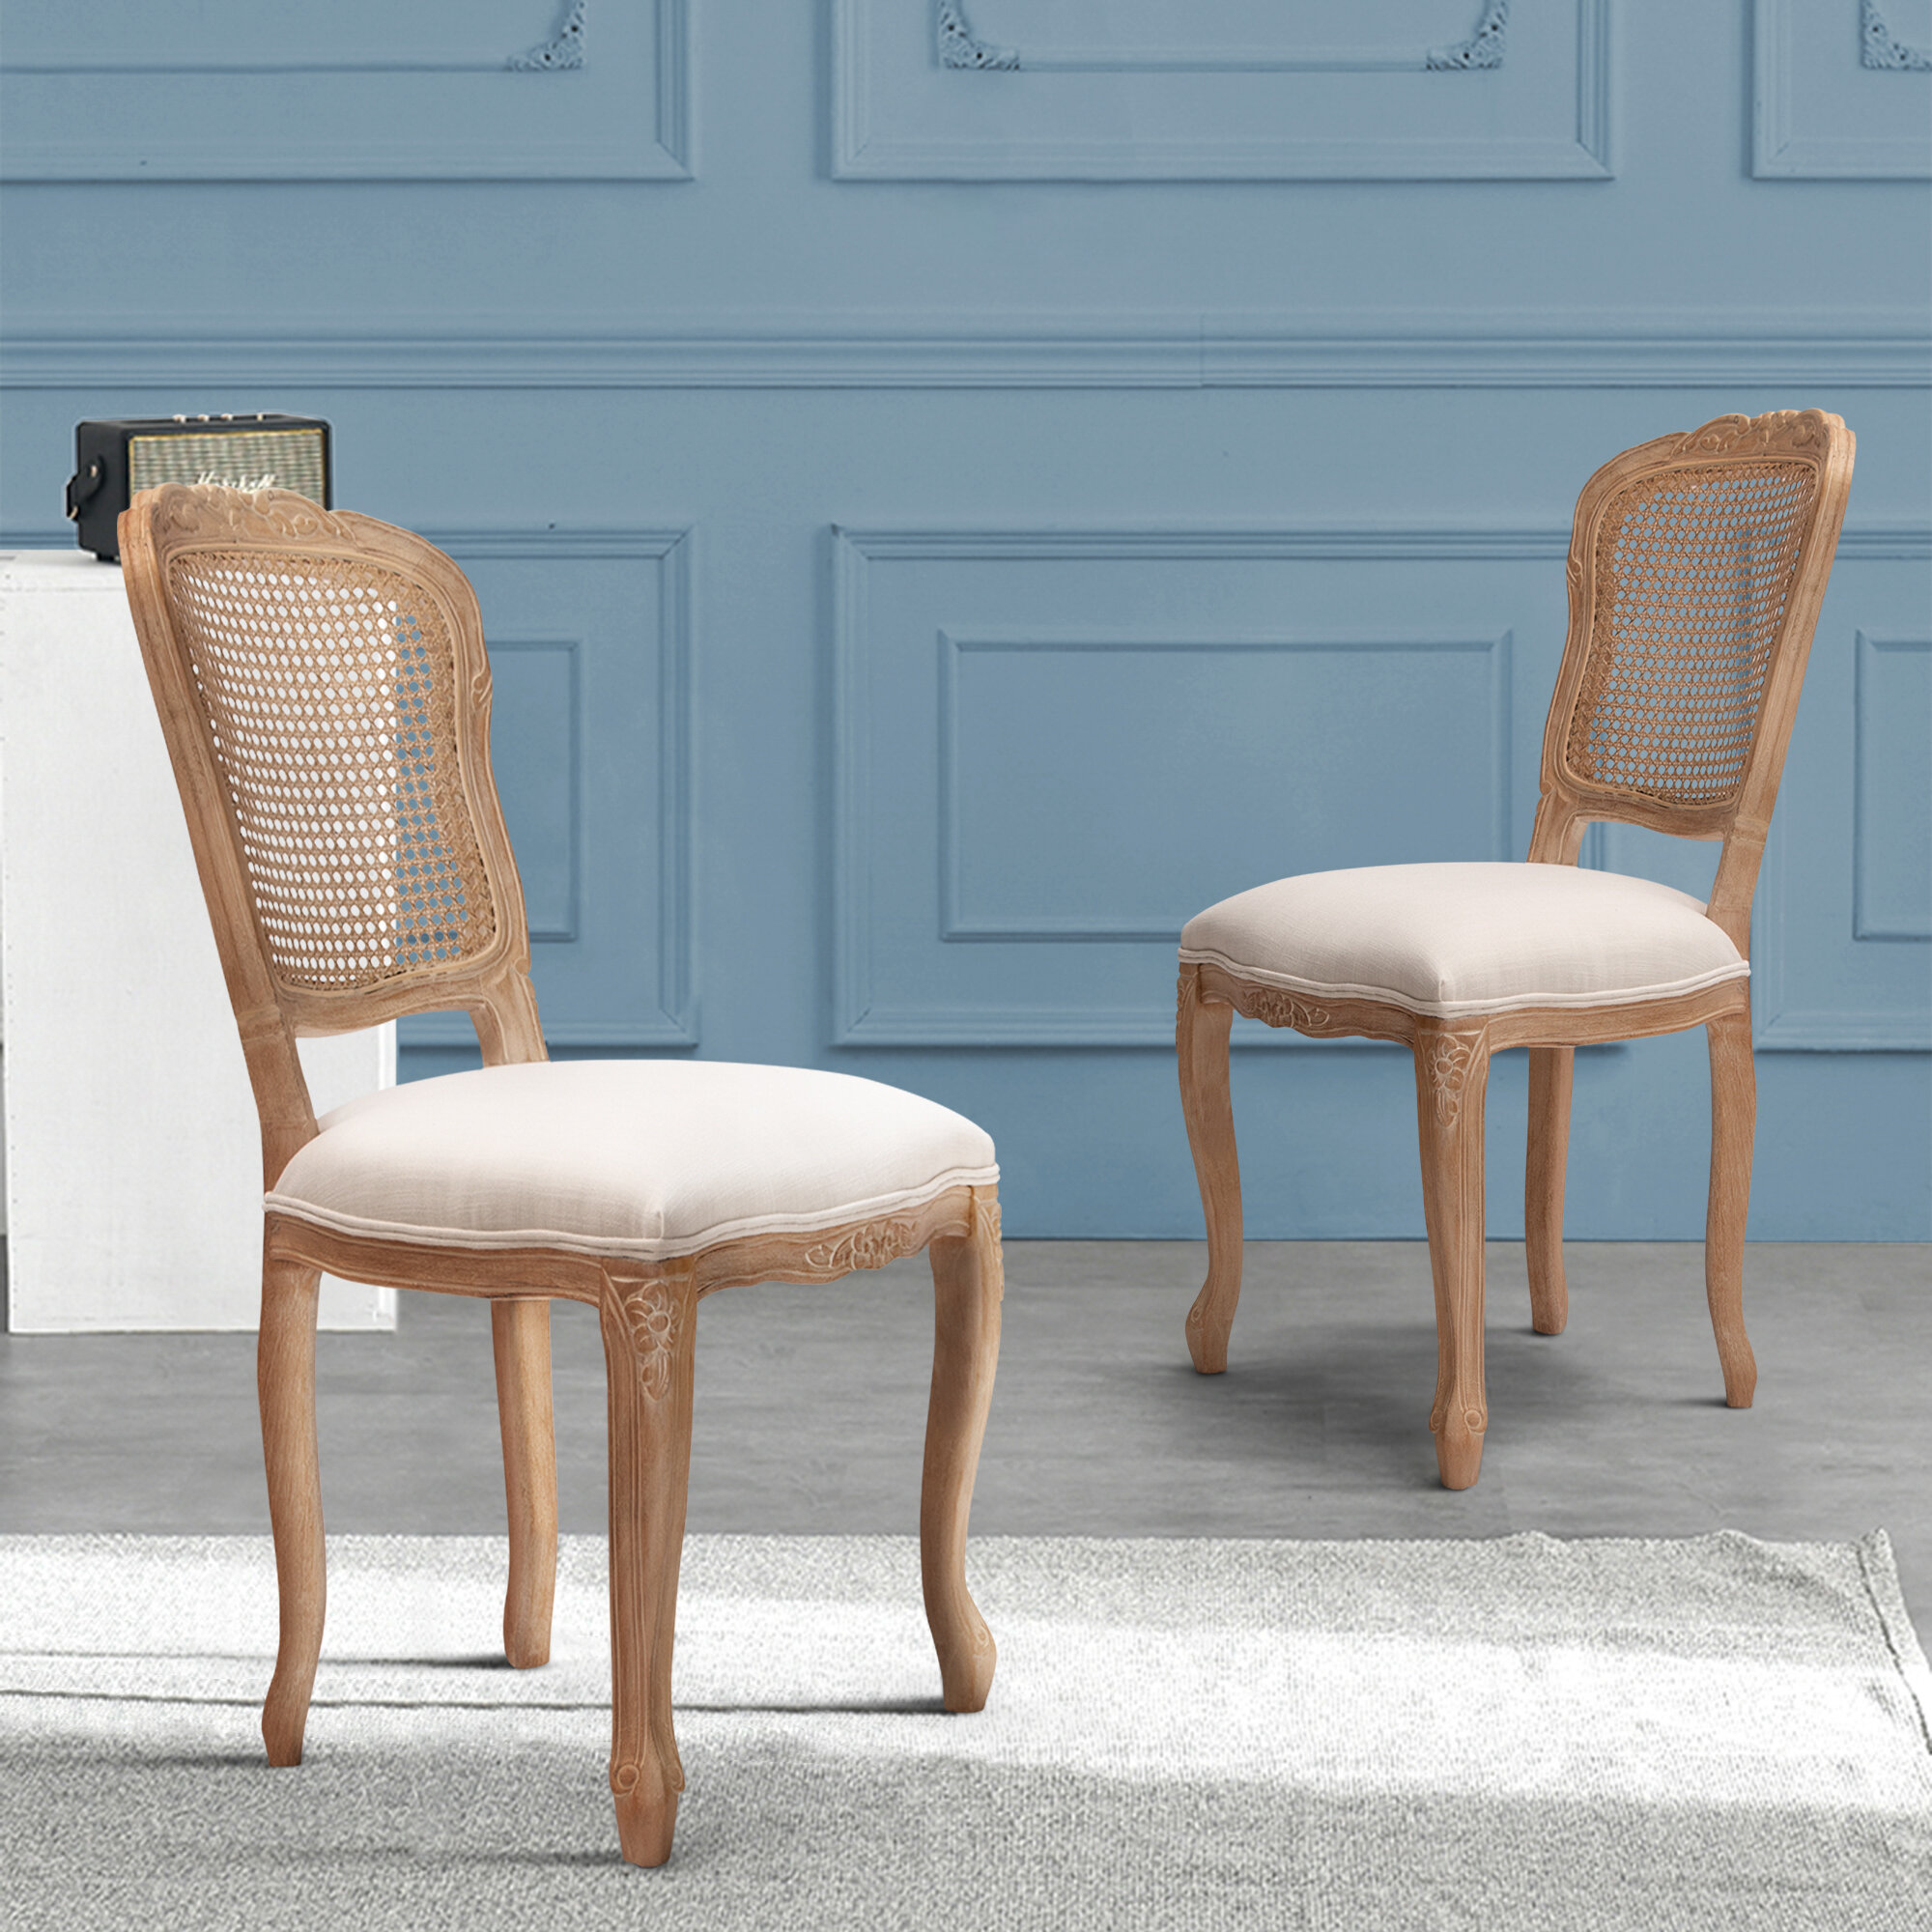 Picture of: Crestlive Products French Dining Chairs Upholstered Accent Chair Parsons Armless Urban Style Linen Fabric With Fine Rattan Back For Living Room Kitchen Restaurant Set Of 2